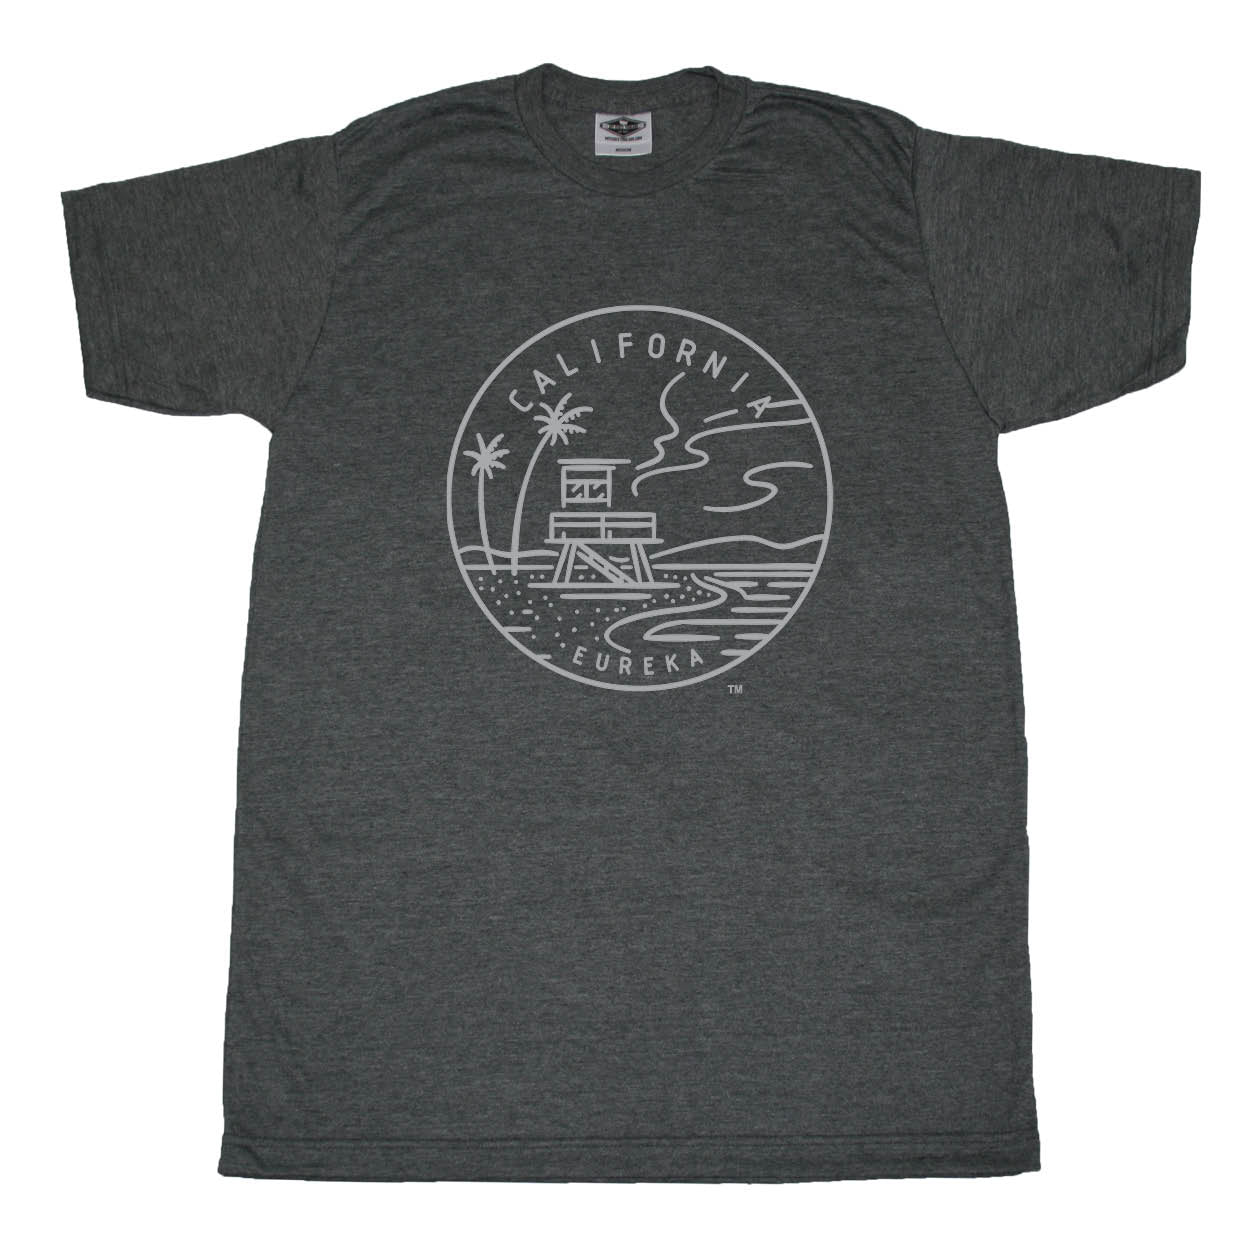 CALIFORNIA TEE | STATE SEAL | EUREKA